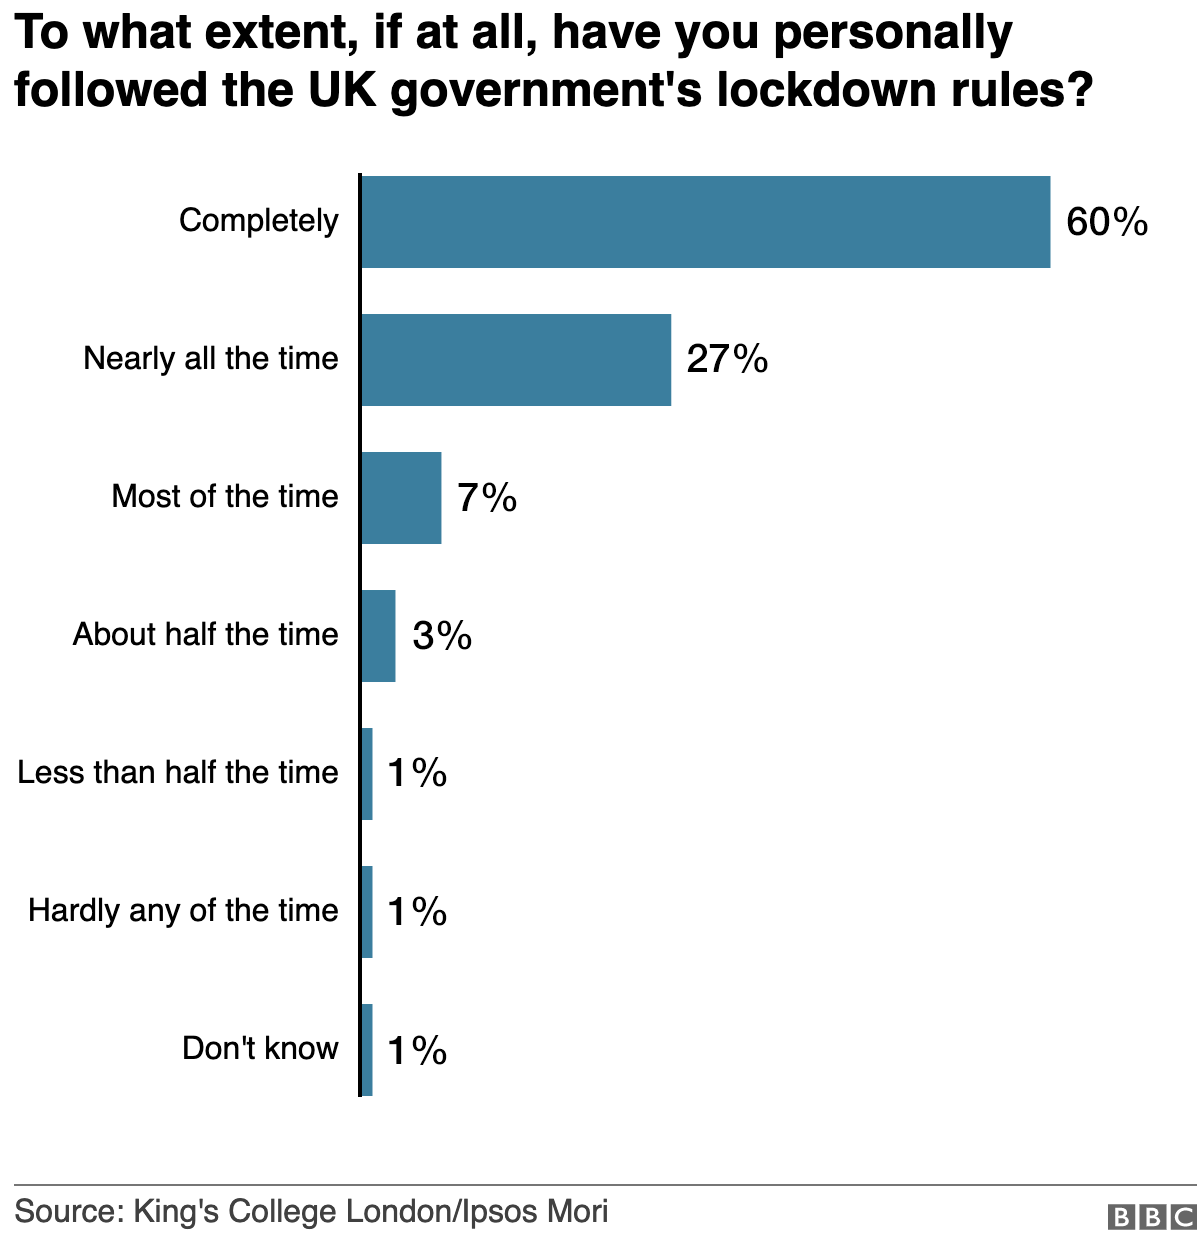 Chart showing survey data on how much people have personally followed the UK government's lockdown rules